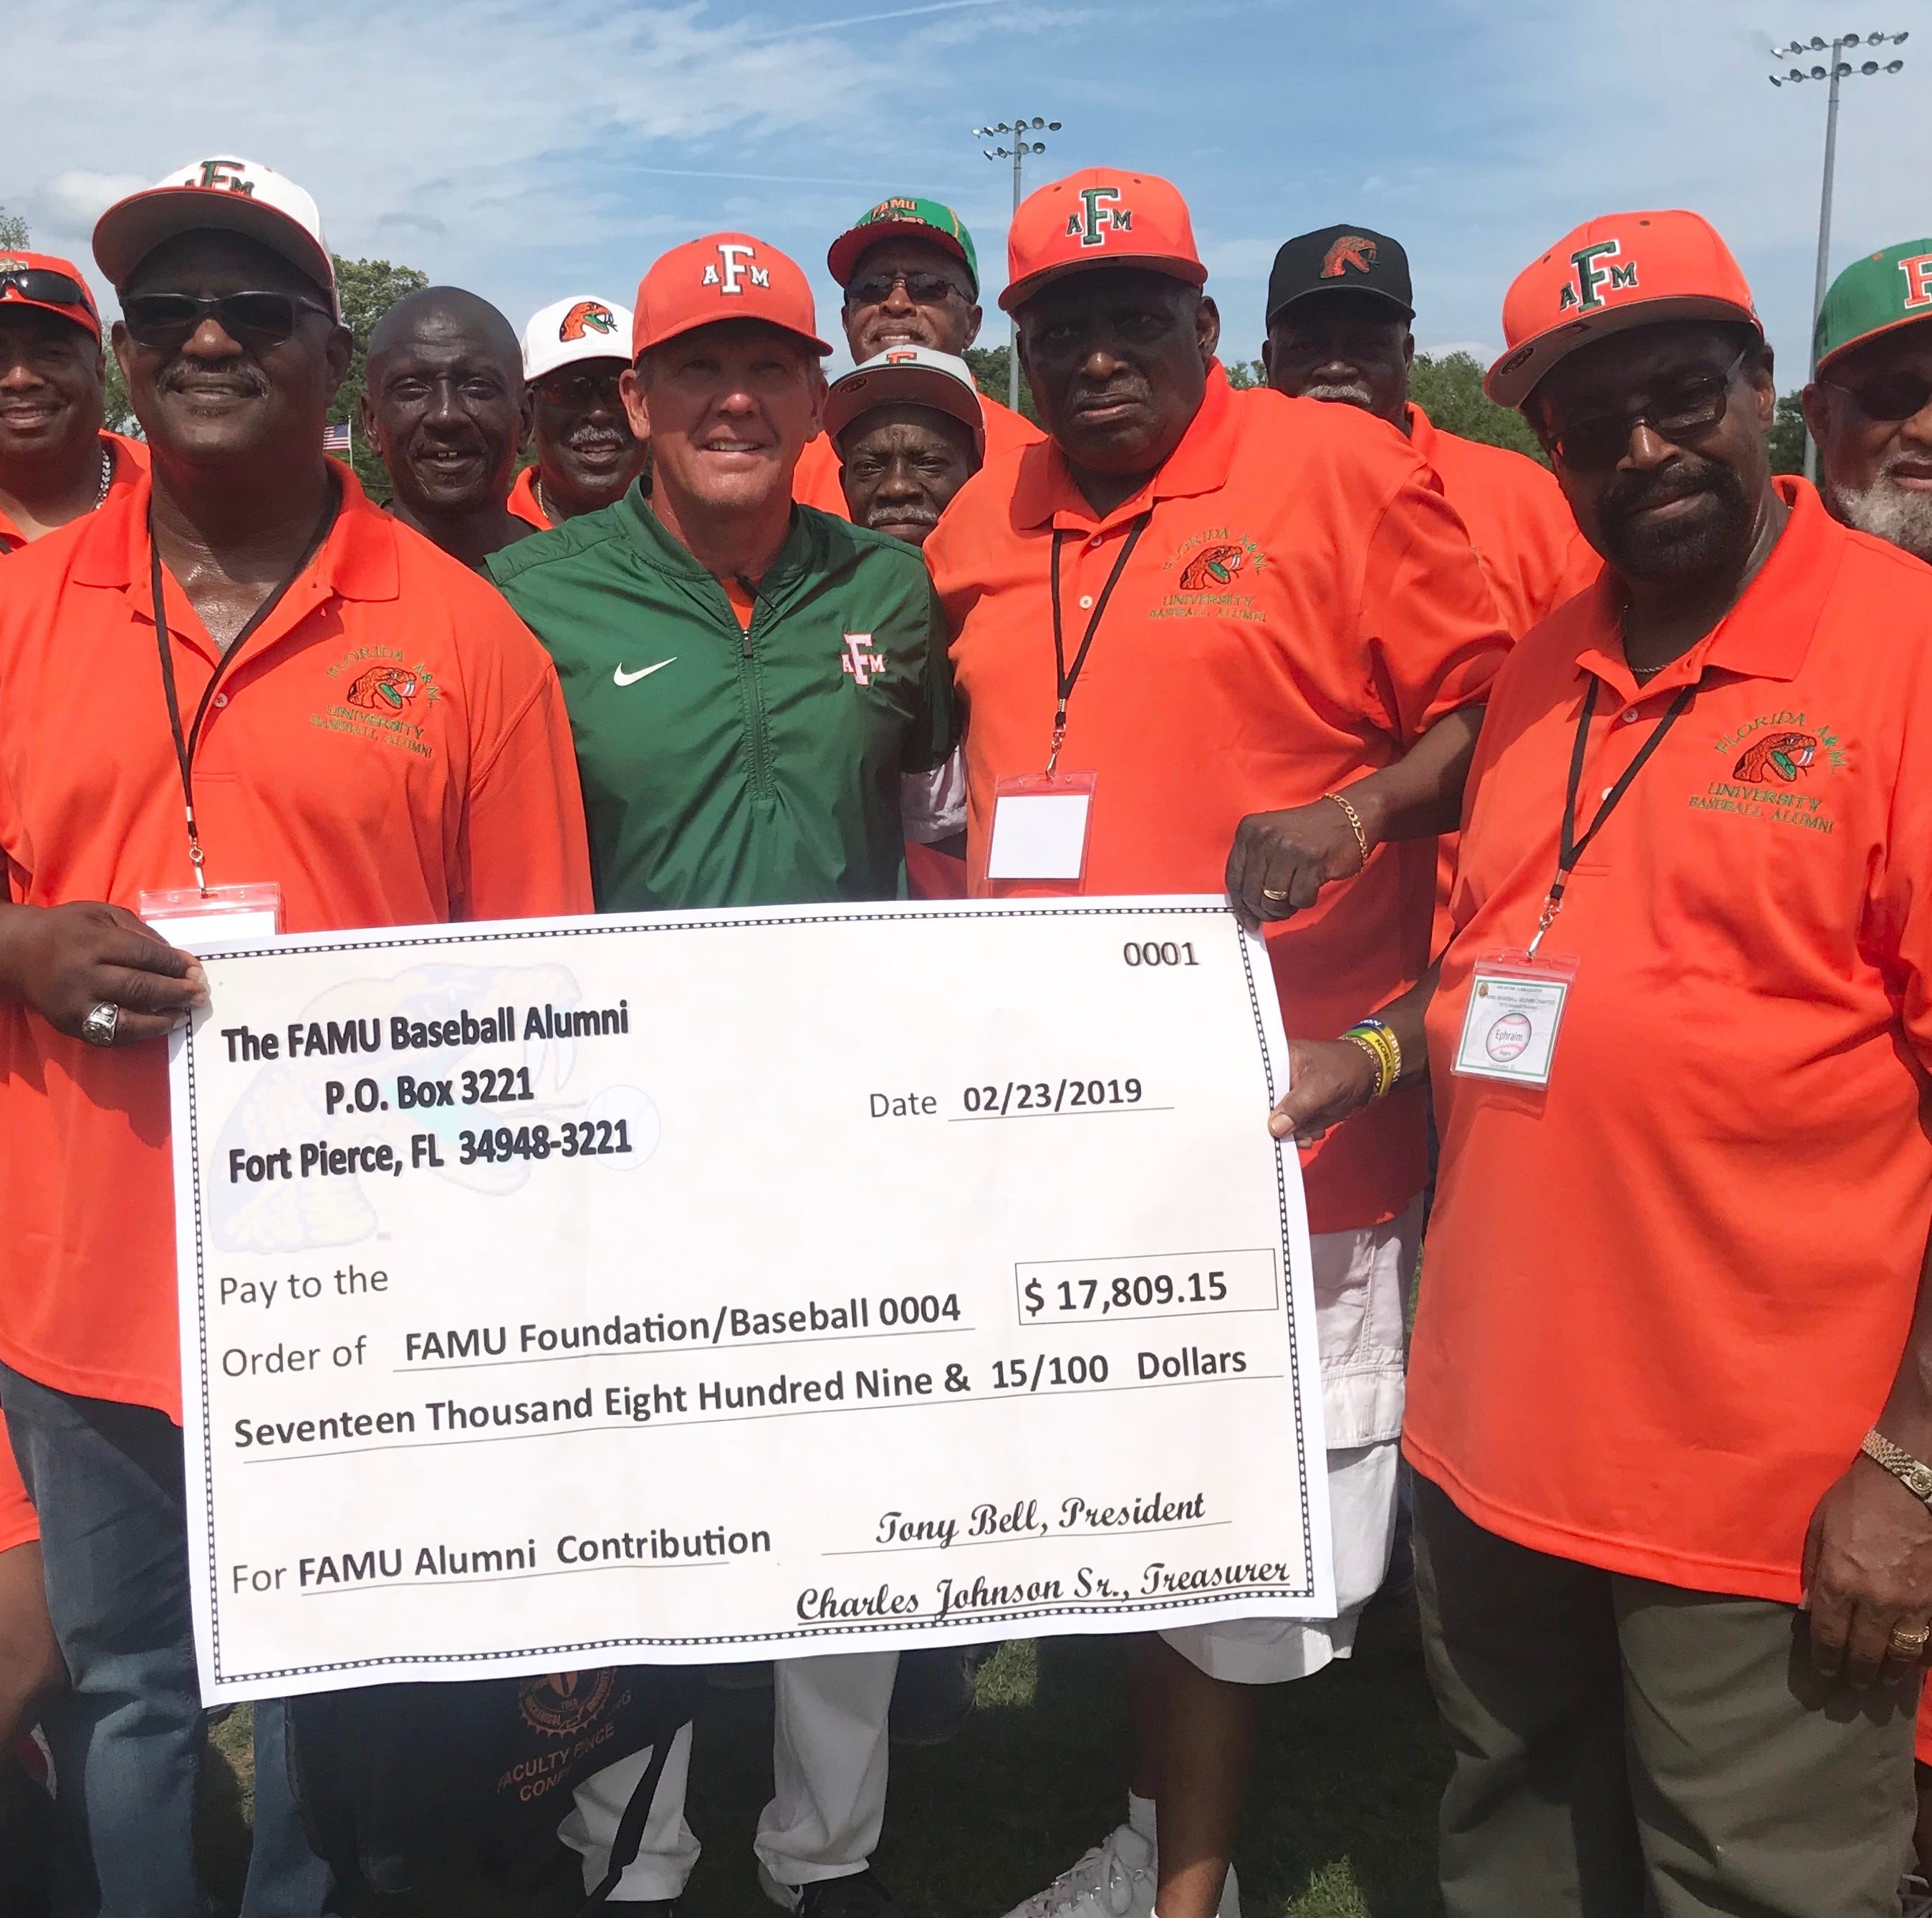 FAMU Baseball Alumni Association makes large donation to the program during reunion